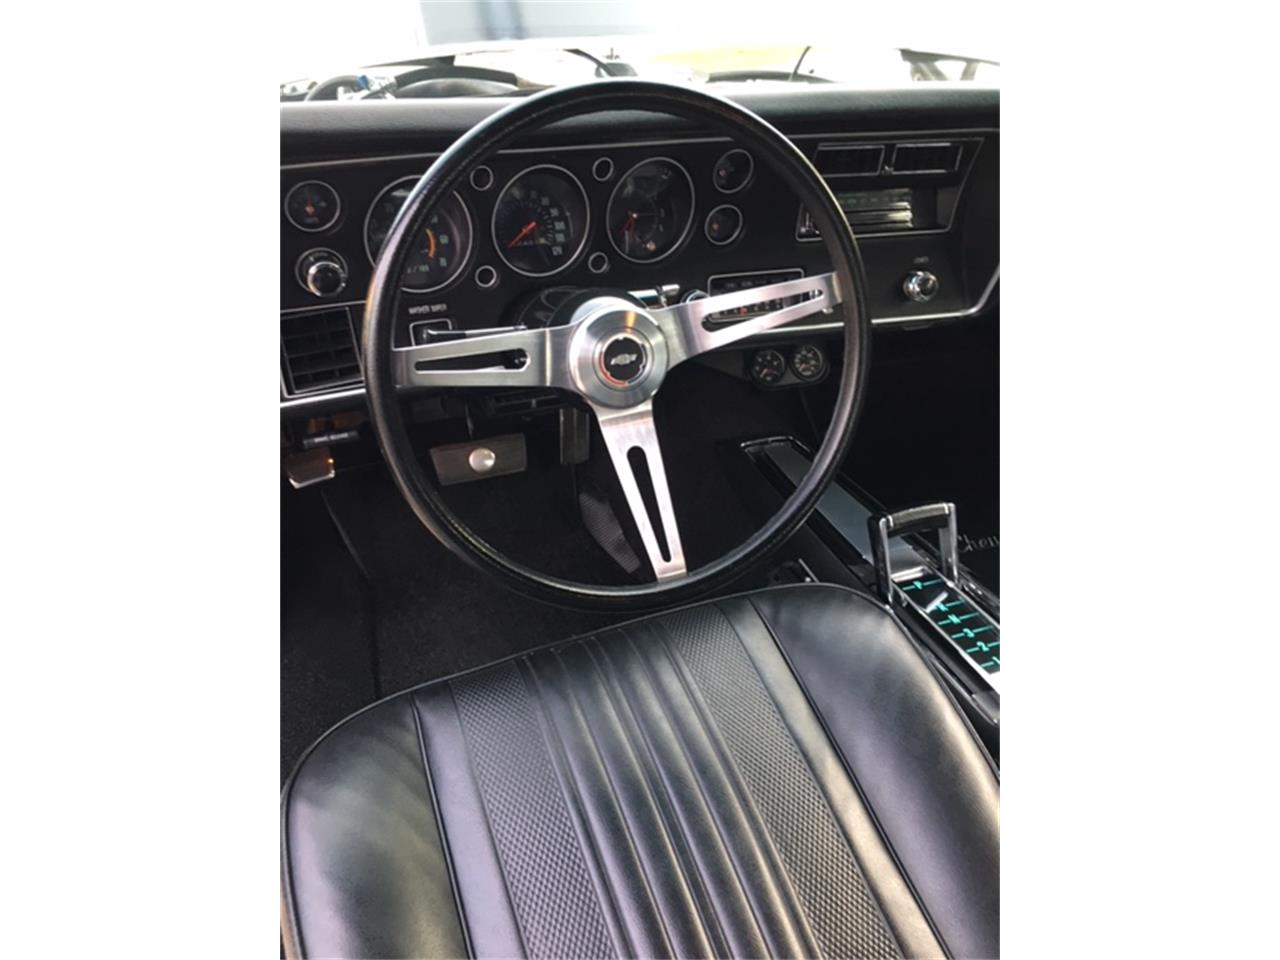 1970 Chevrolet Chevelle SS for sale in Metairie, LA – photo 21